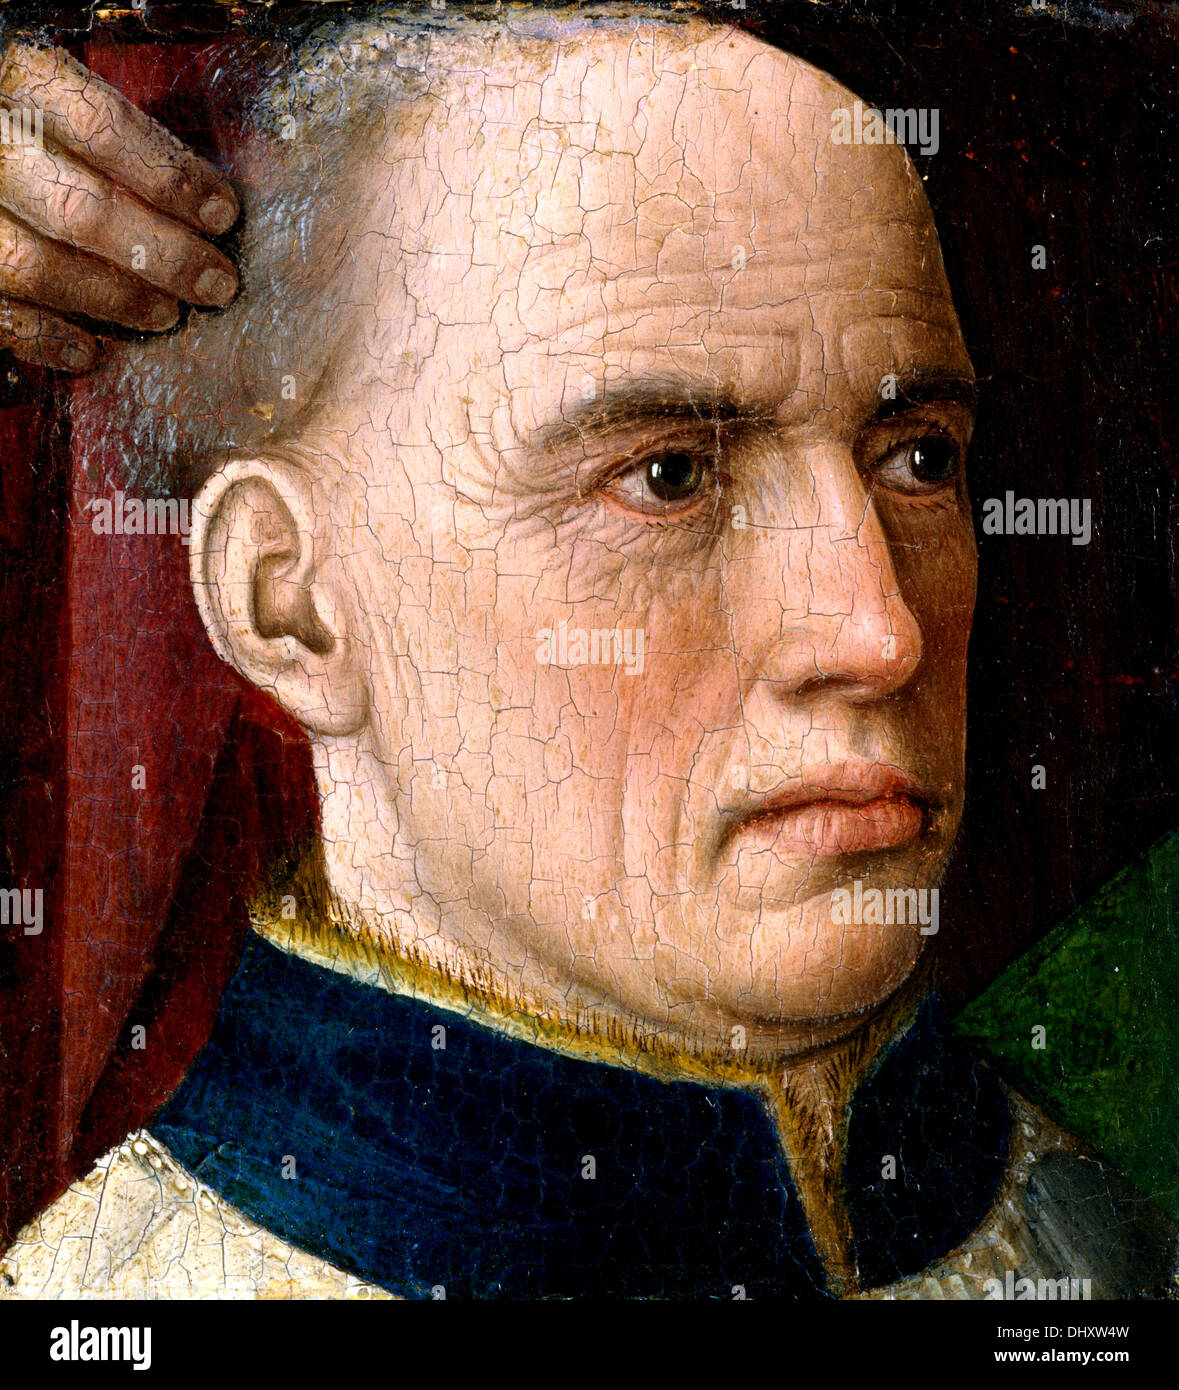 Head of a Donor - by Albert van Ouwater, 1460 - Stock Image